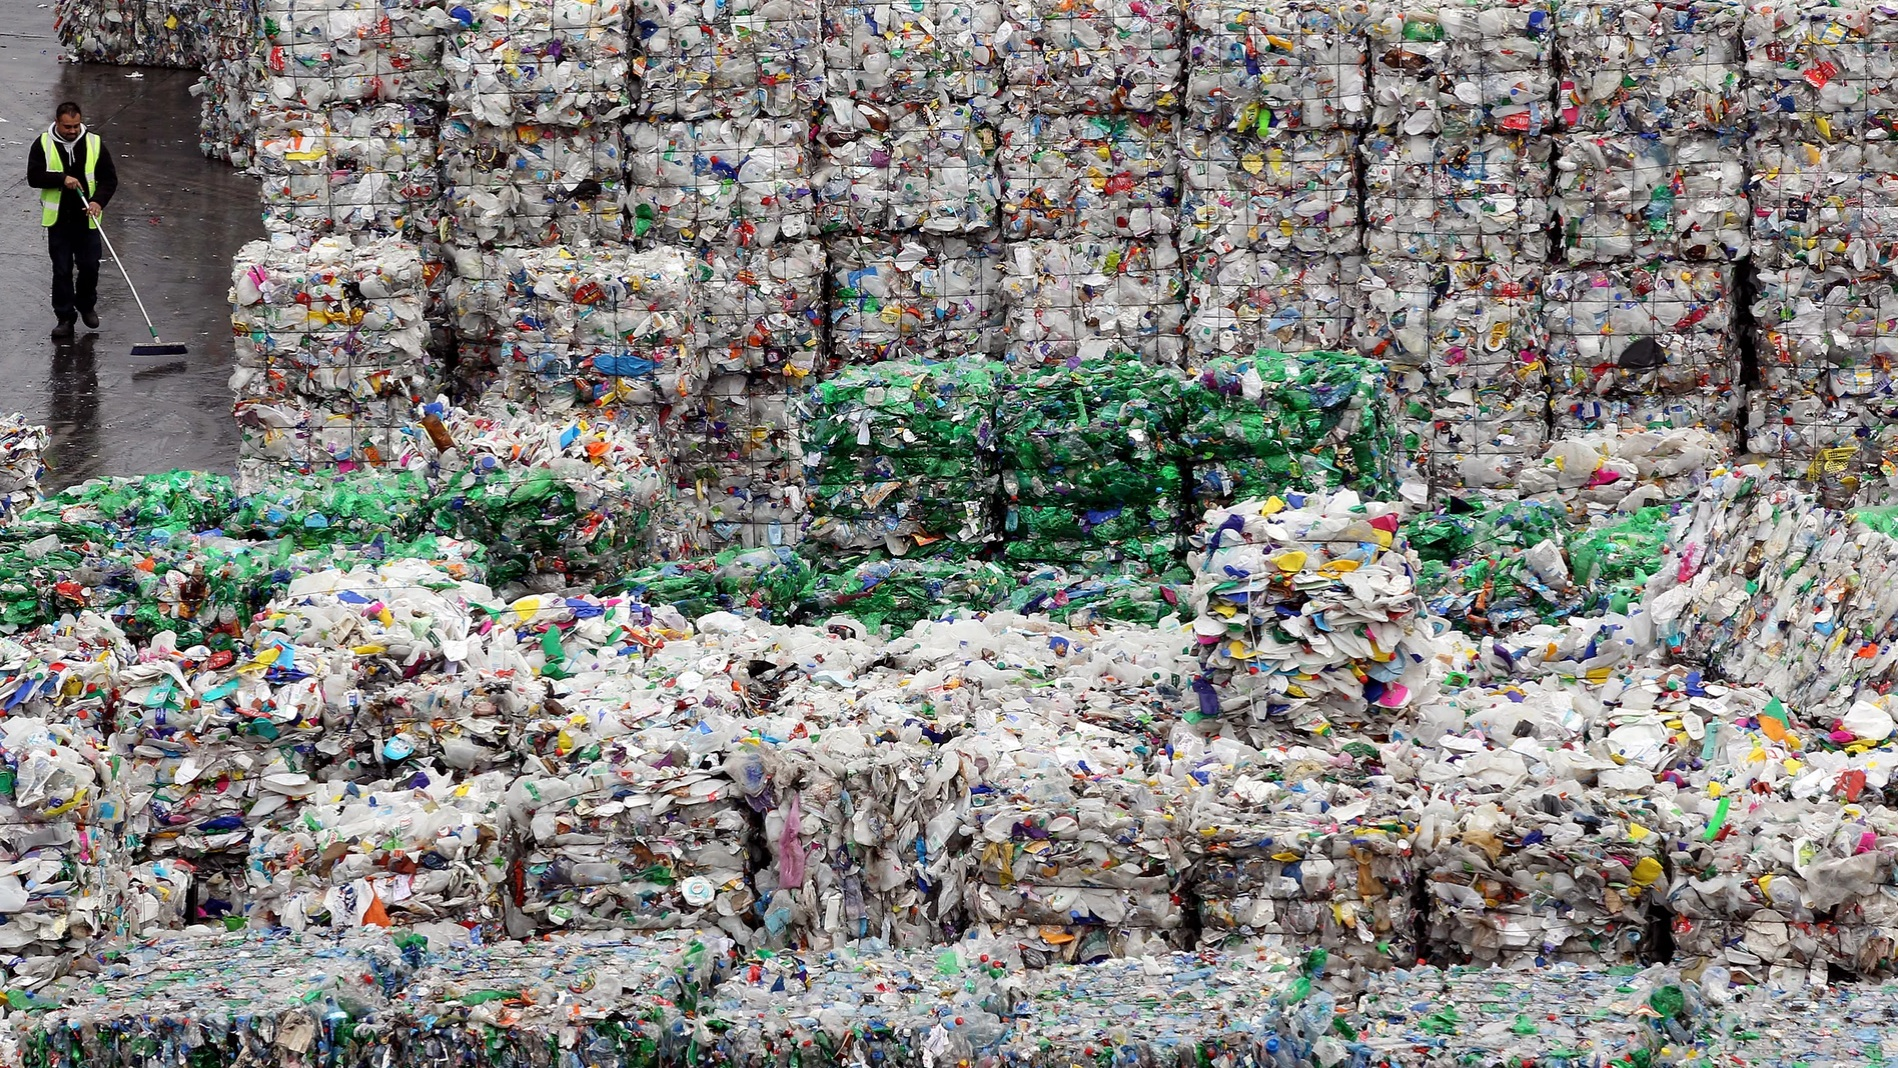 5. why can't we just recycle it all? - You may have heard that China no longer wants to accept trash from the U.S. An article from MIC explains how issues within the recycling industry are creating a global conversation we can't just shove under the rug anymore (or ship overseas).